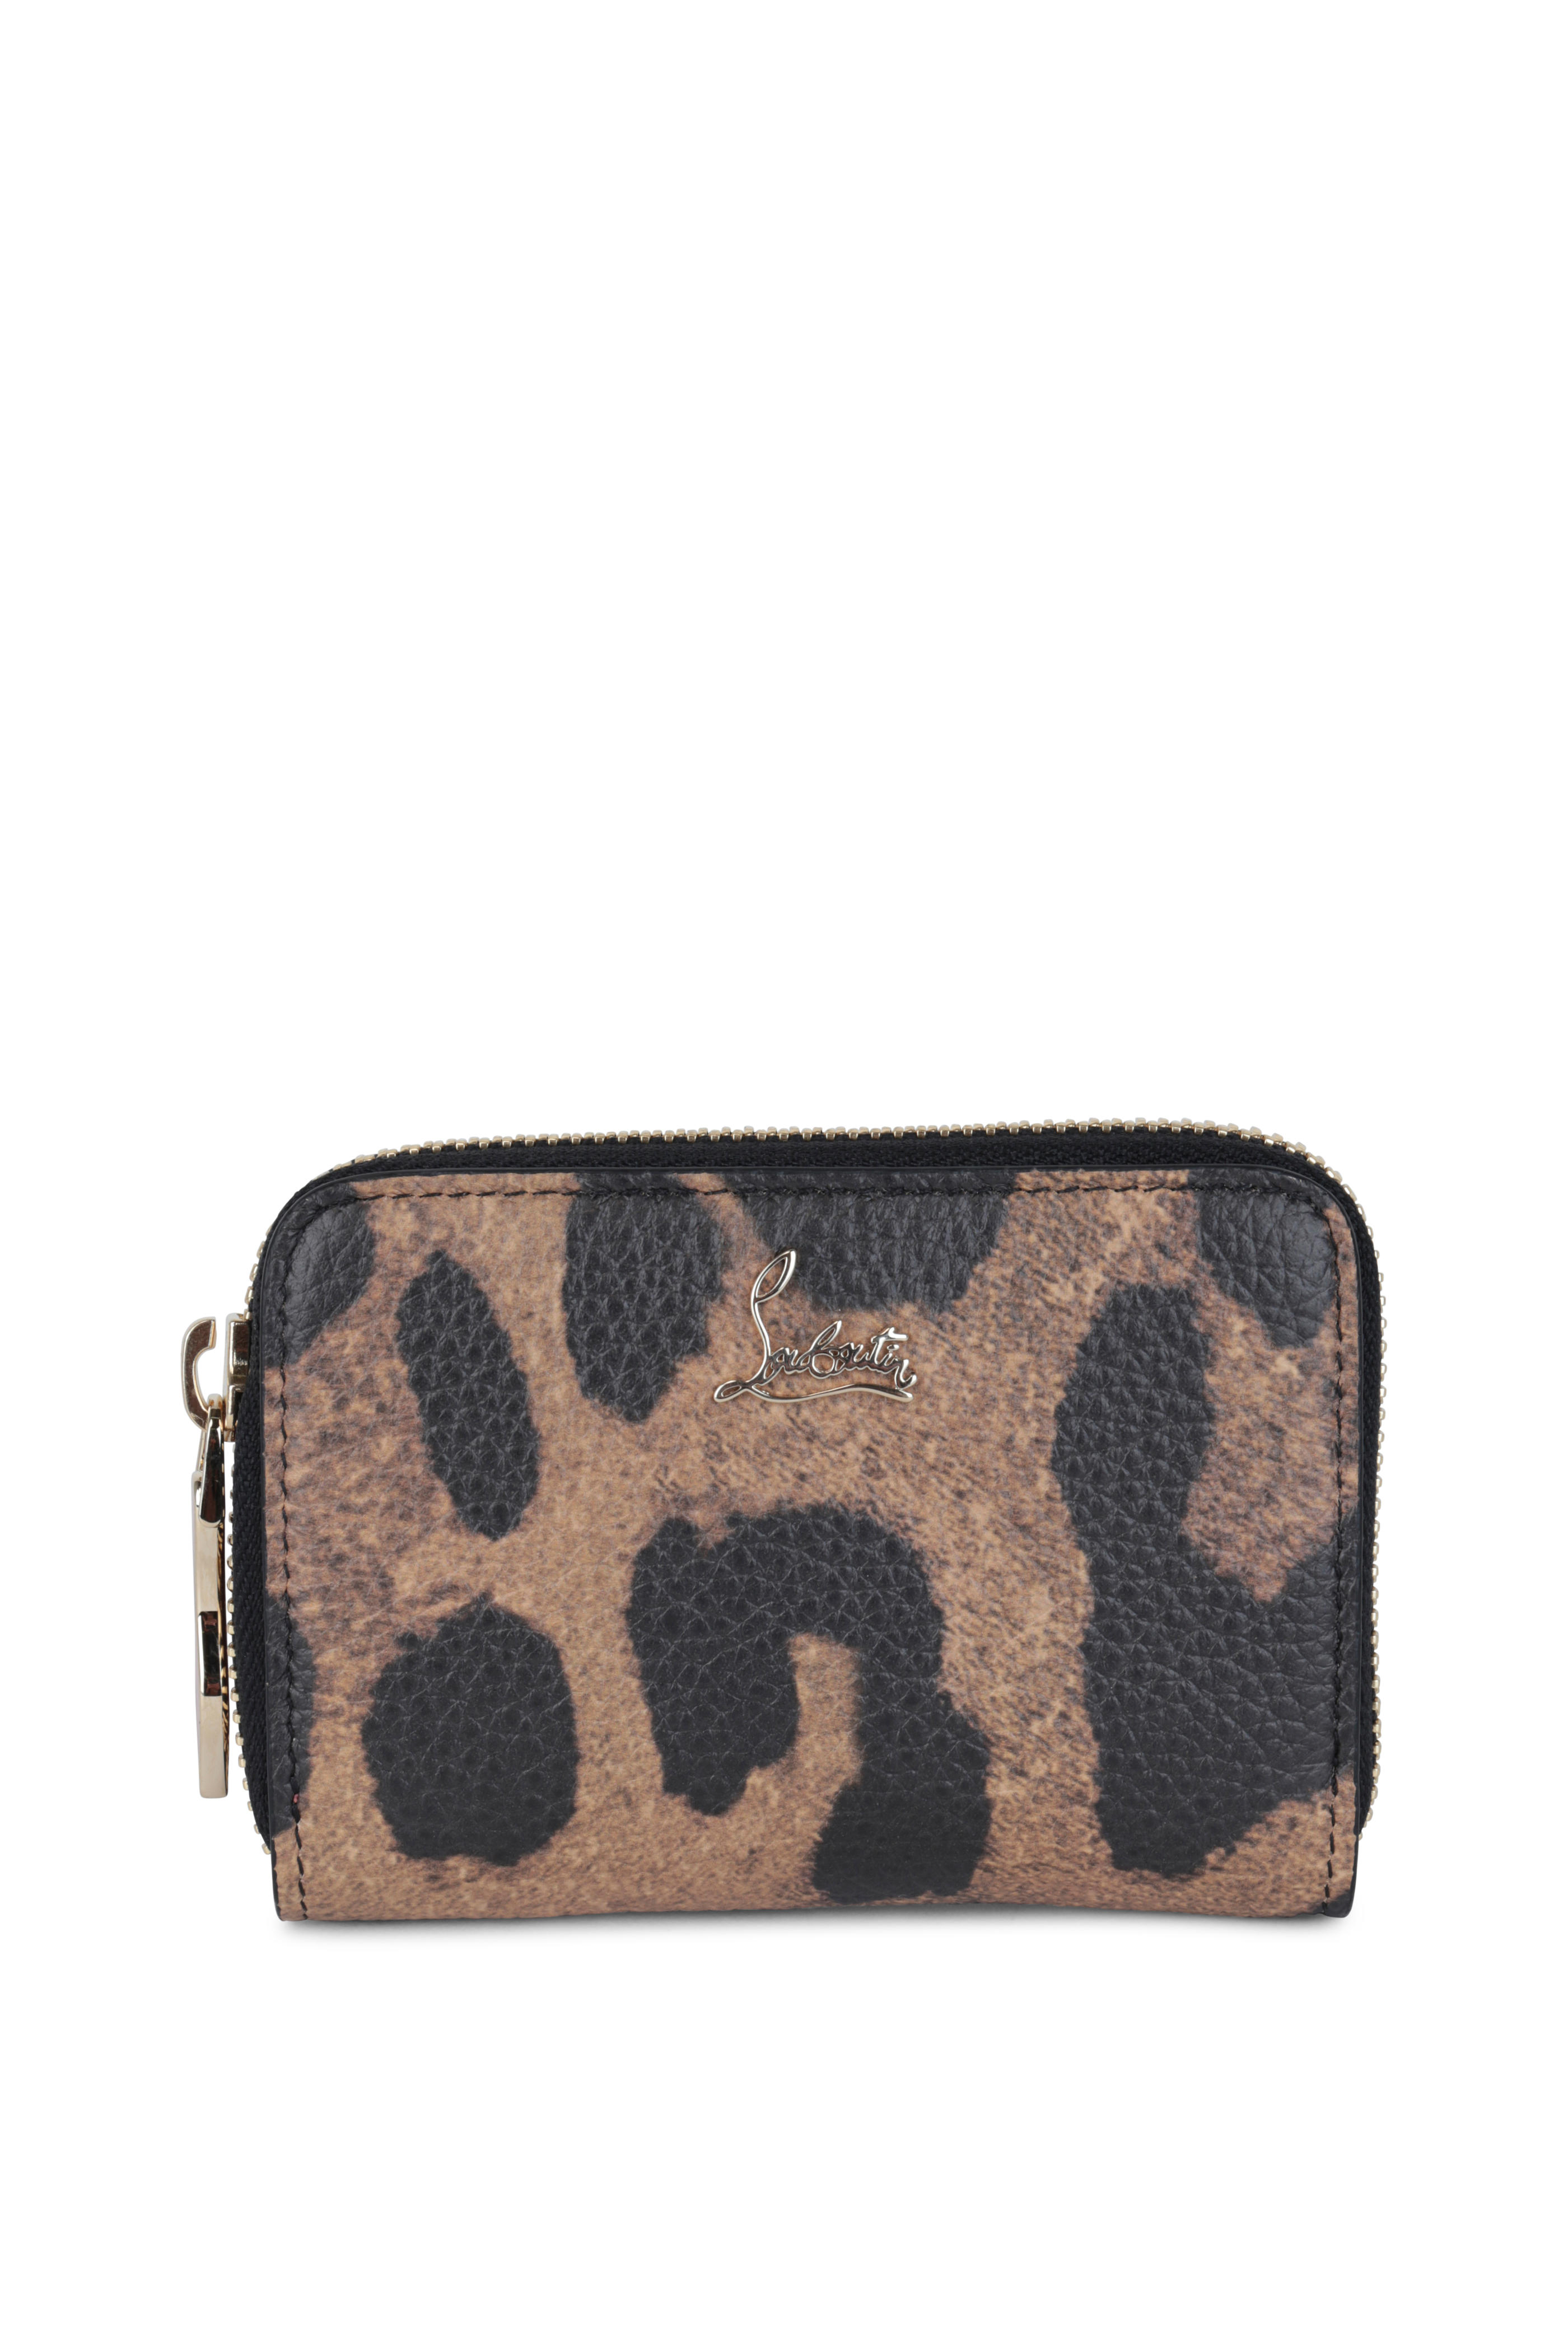 8a42975ff Christian Louboutin - Panettone Leopard-Print Leather Coin Purse ...